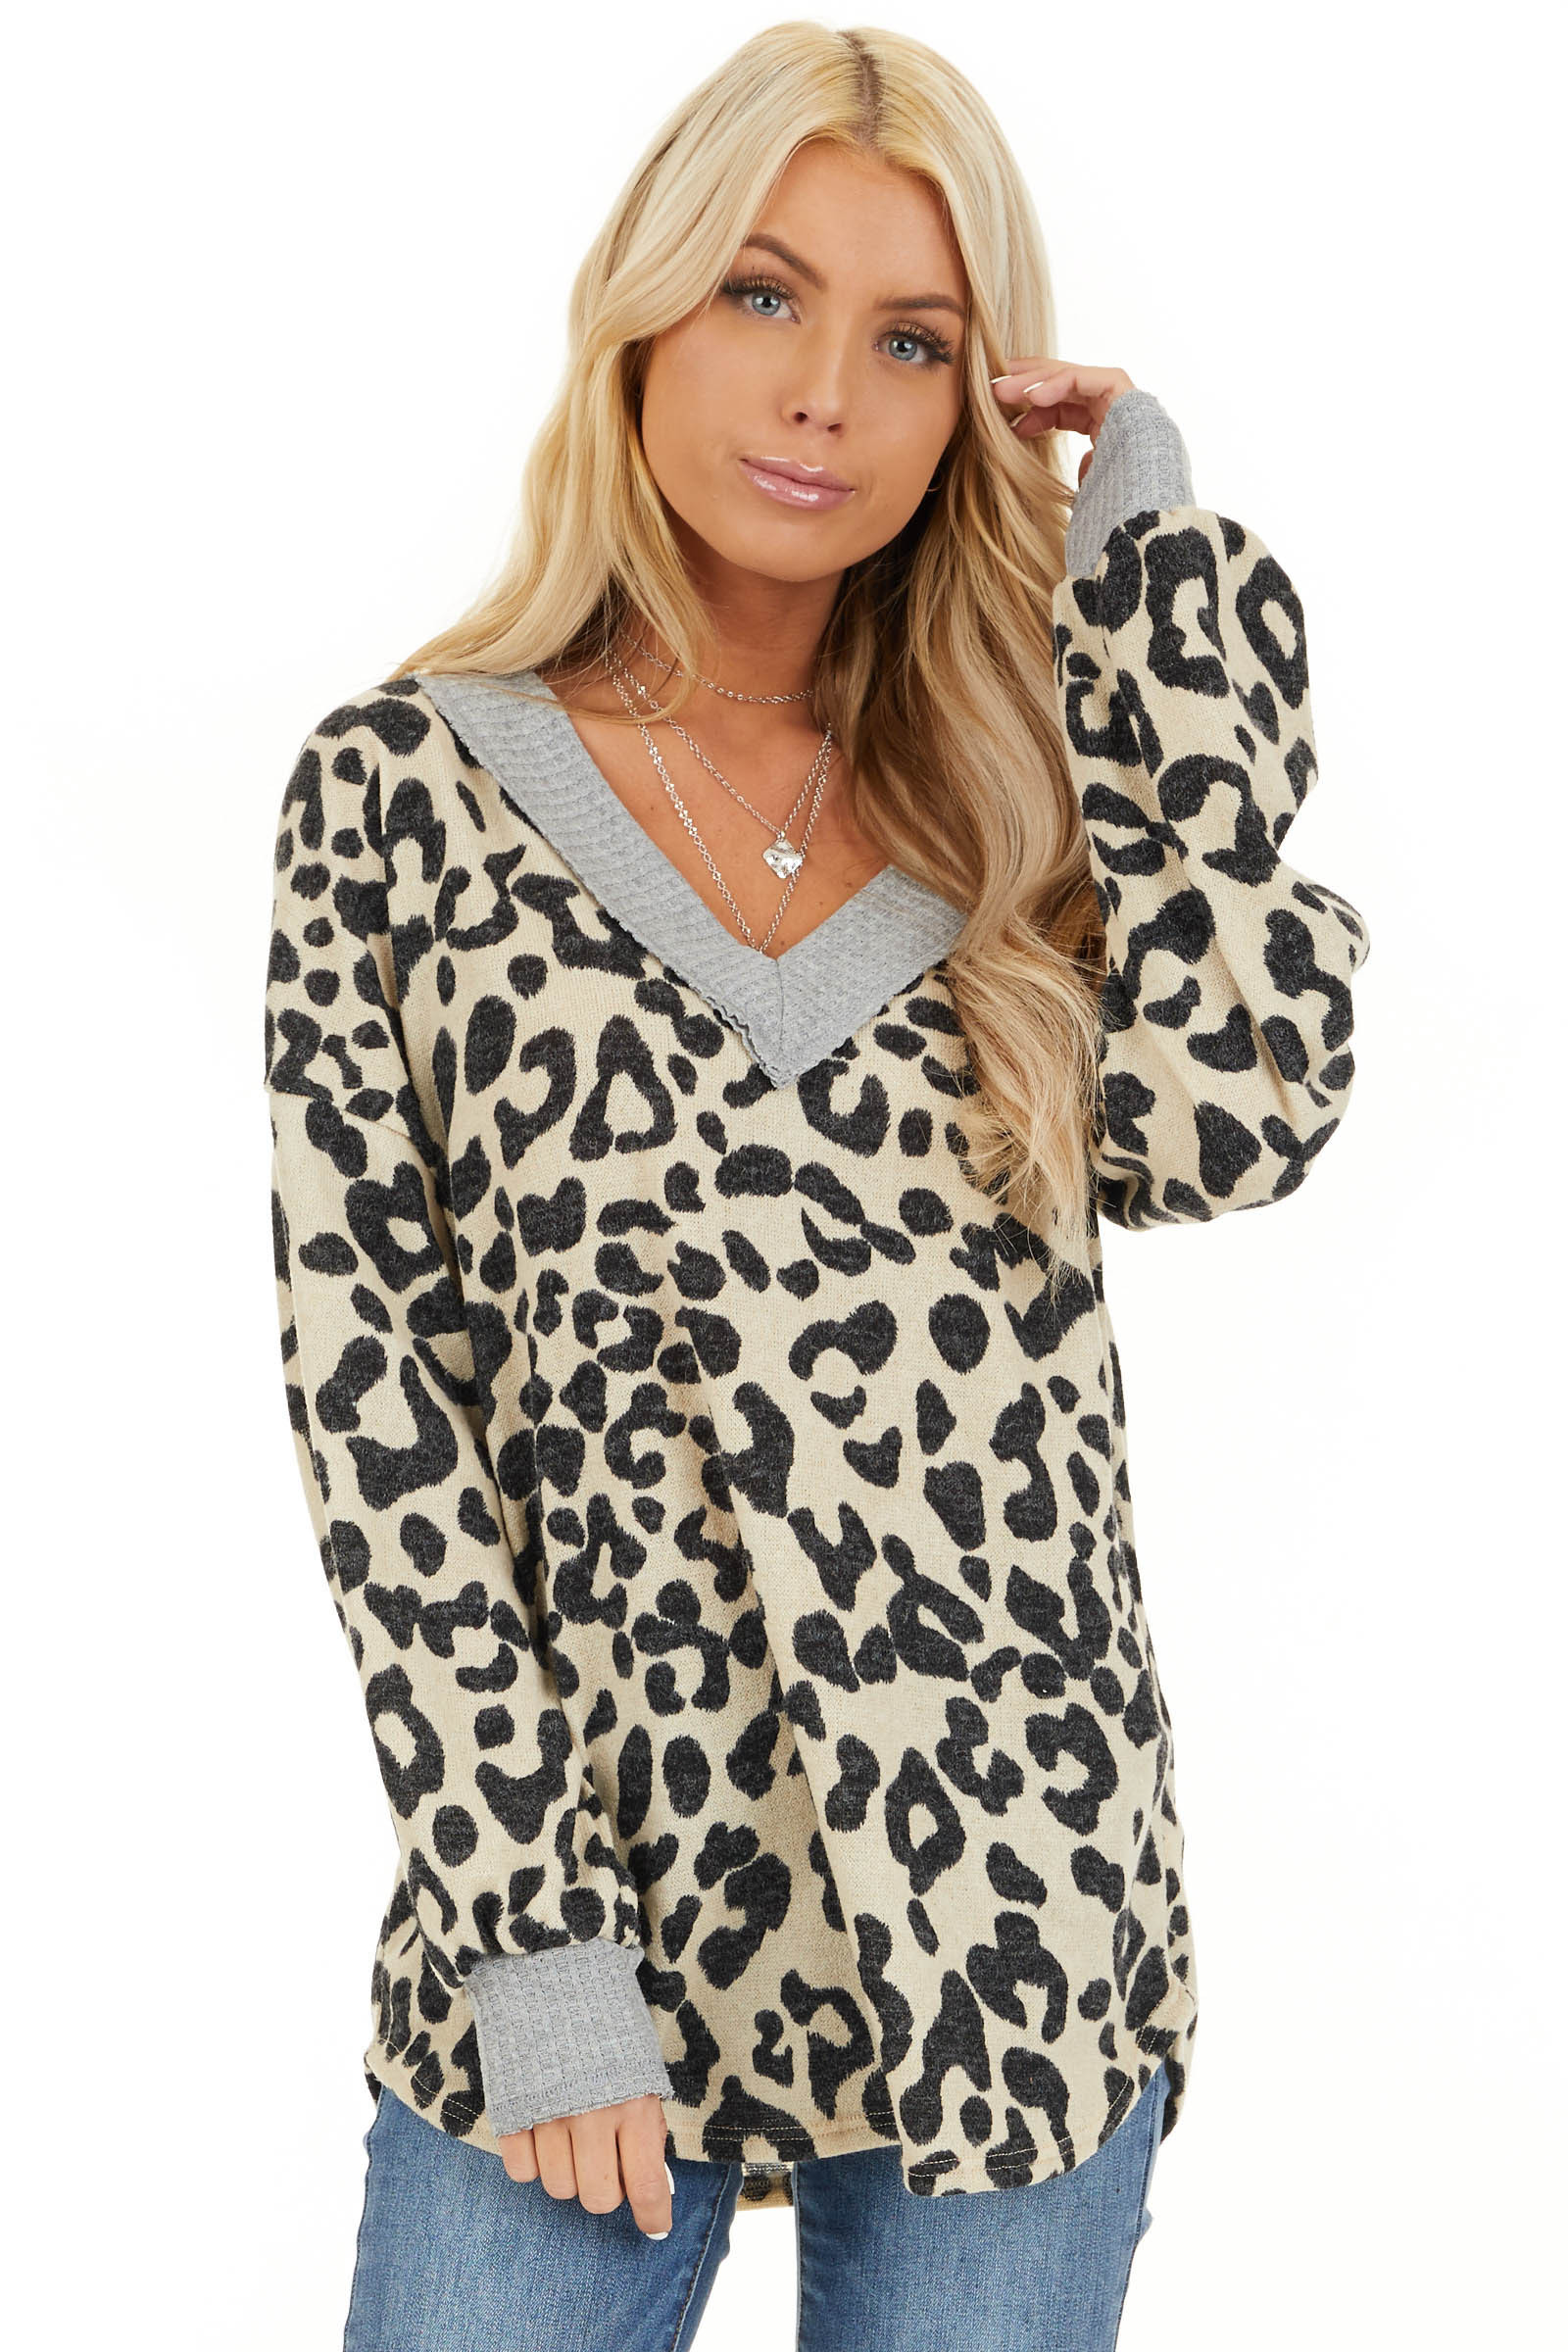 Cream Leopard Print V Neck Top with Grey Contrast front close up